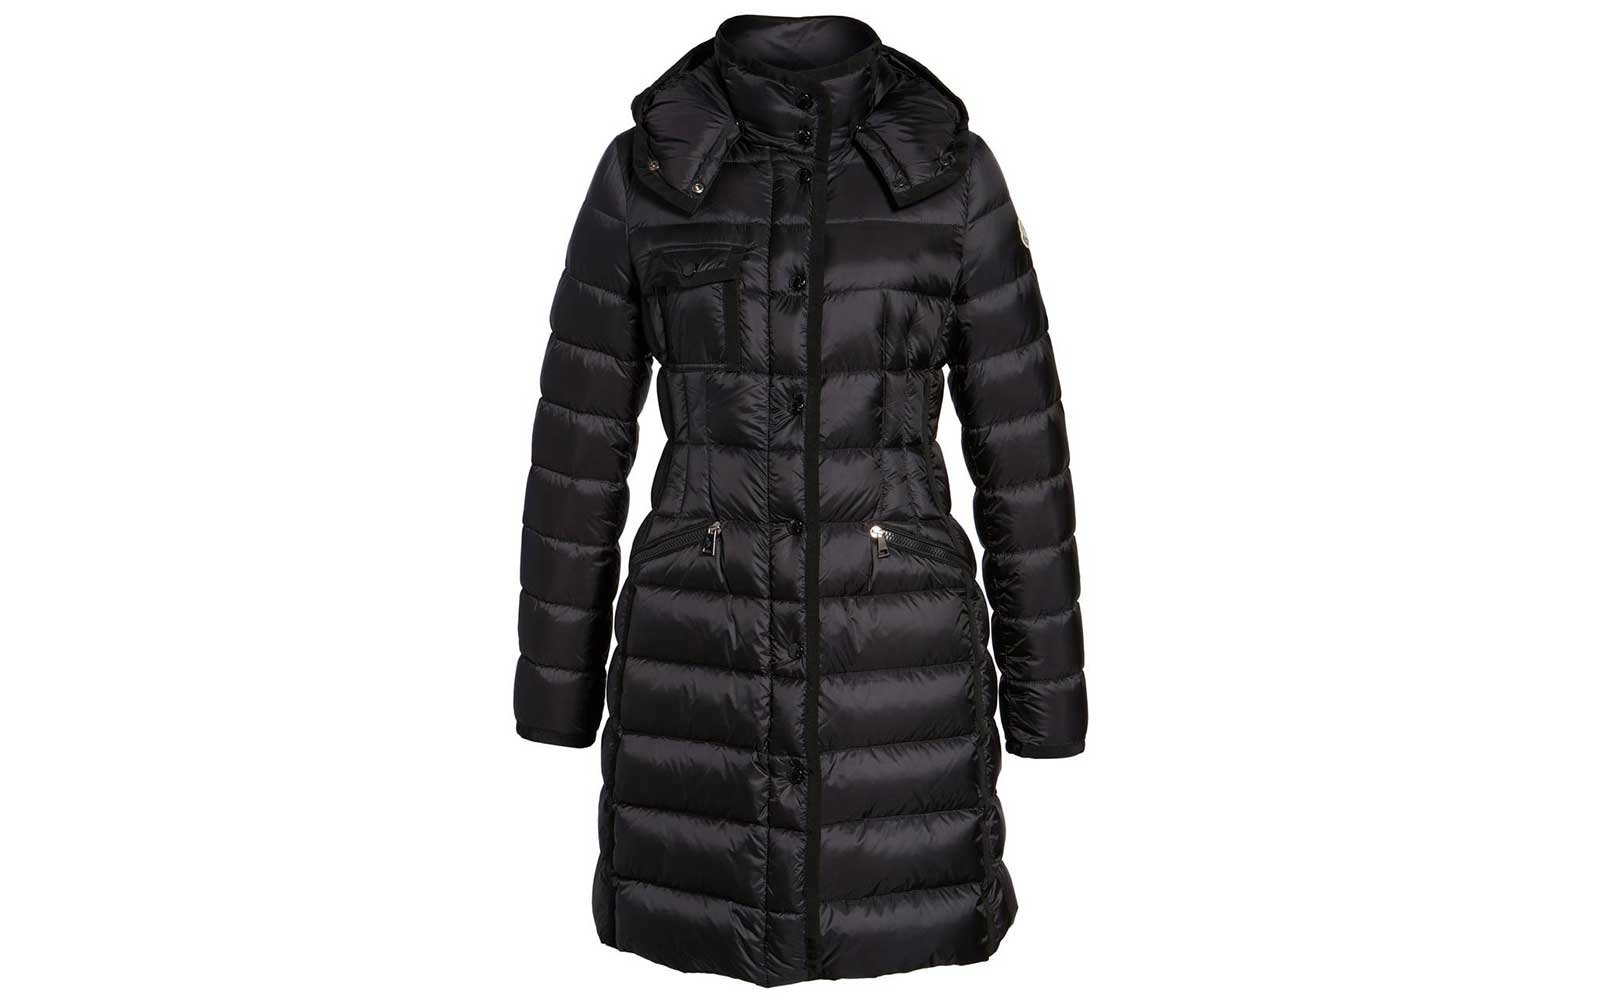 Luxury puffer coat by Moncler